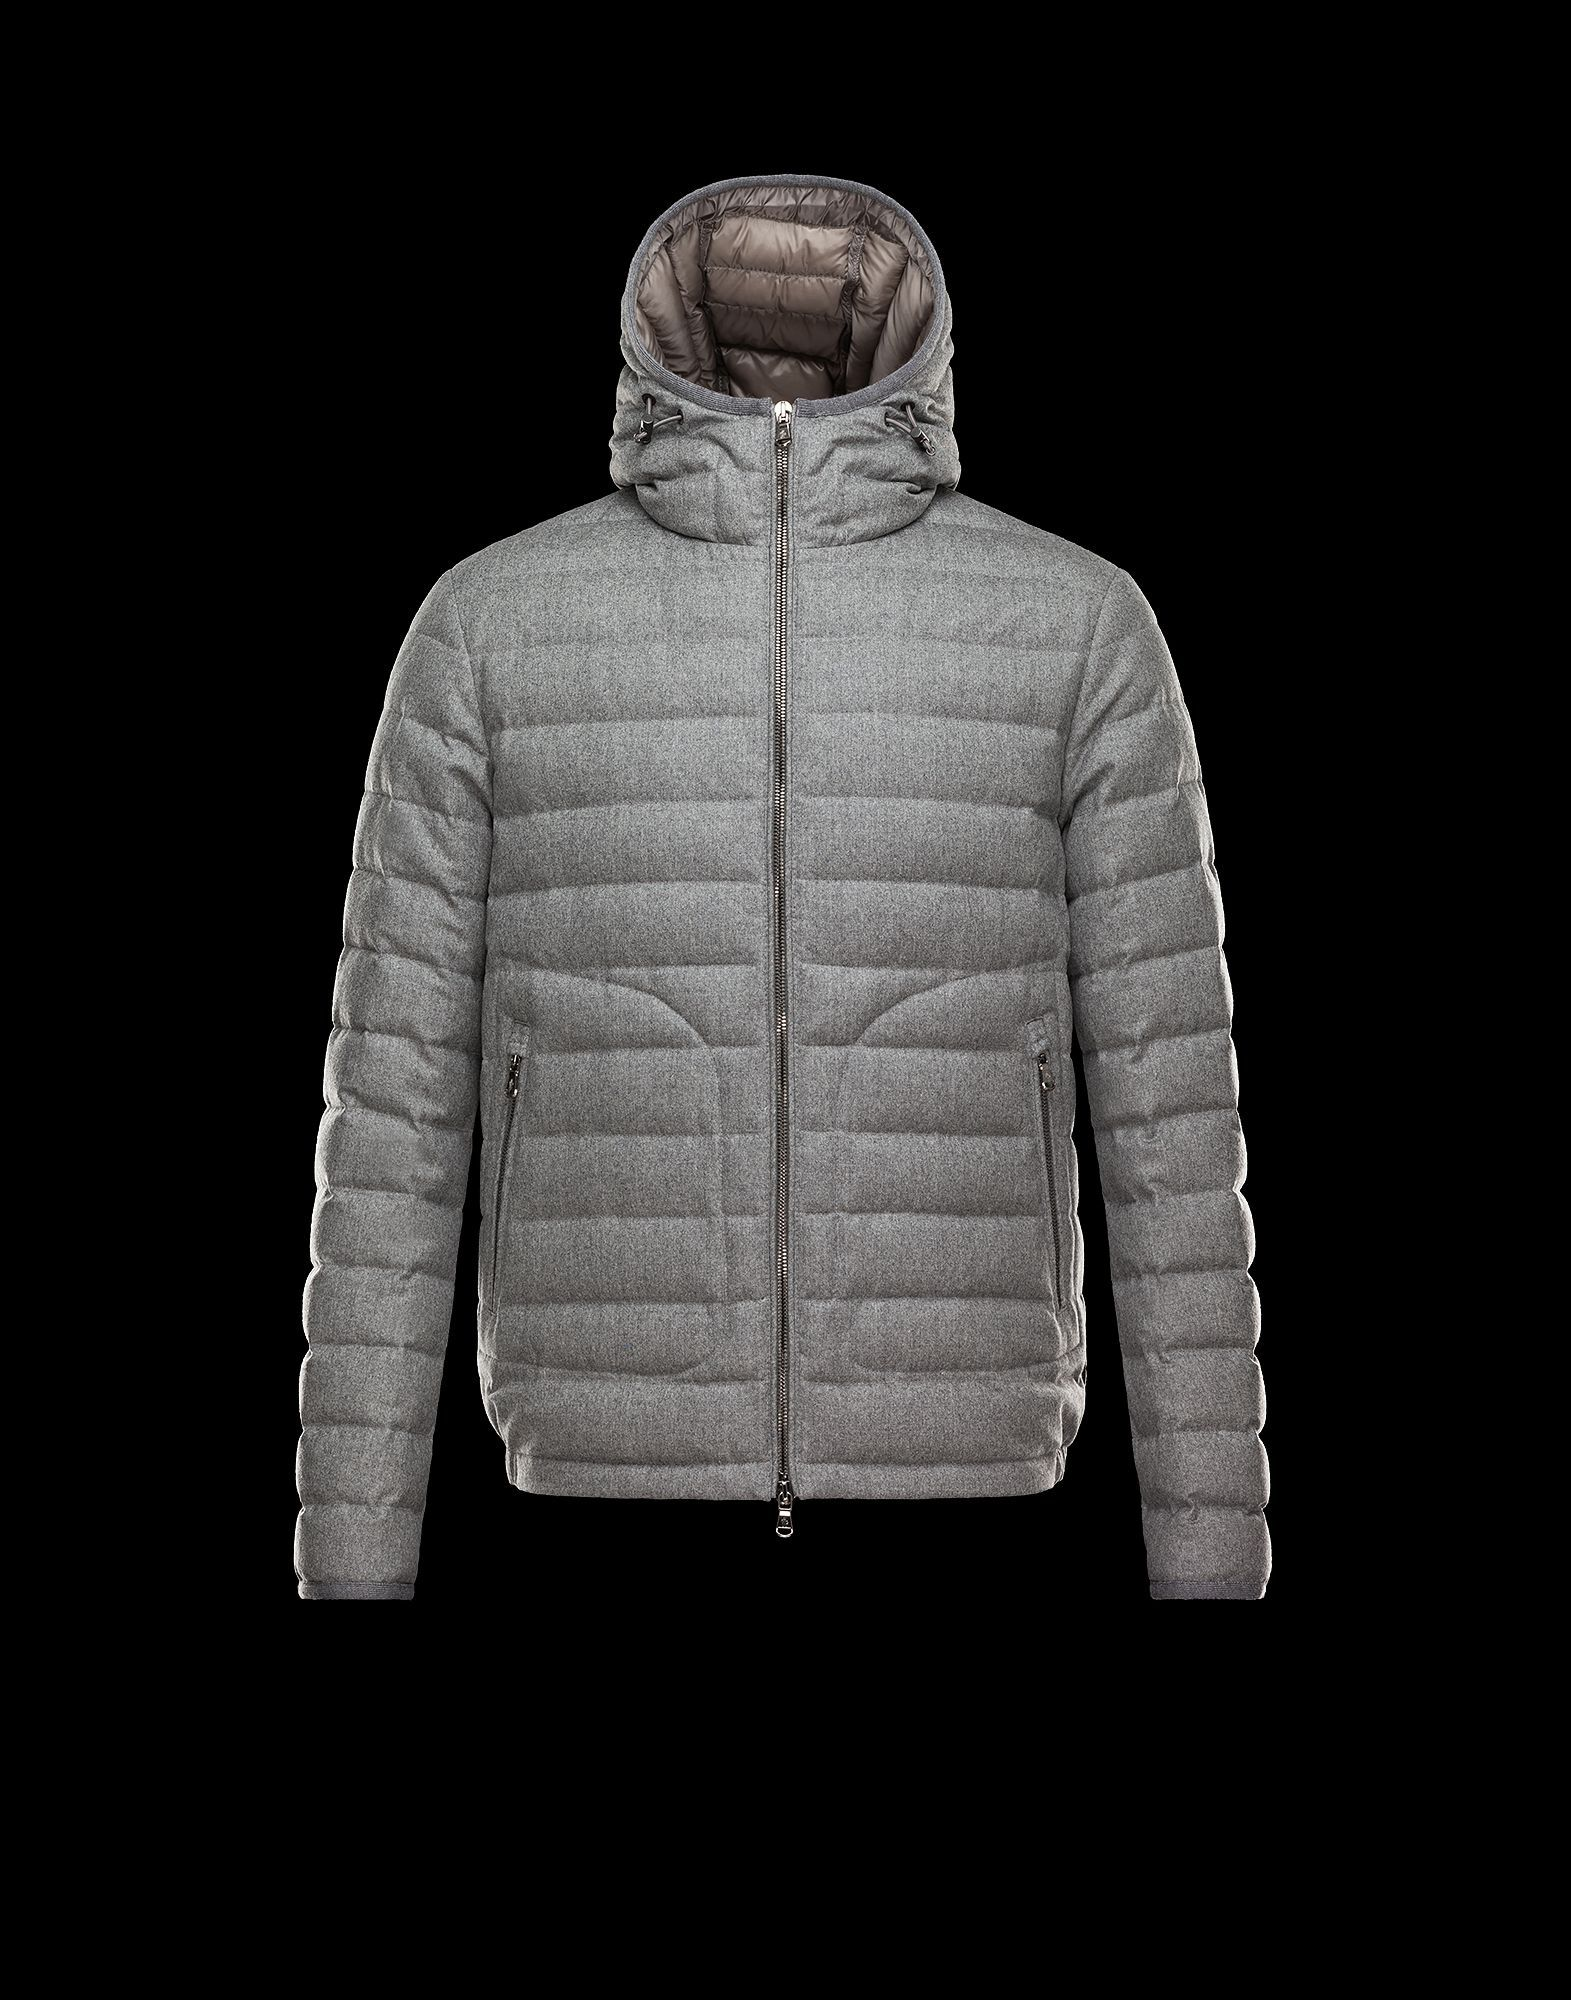 moncler99 on Moncler, Jackets, Winter jackets